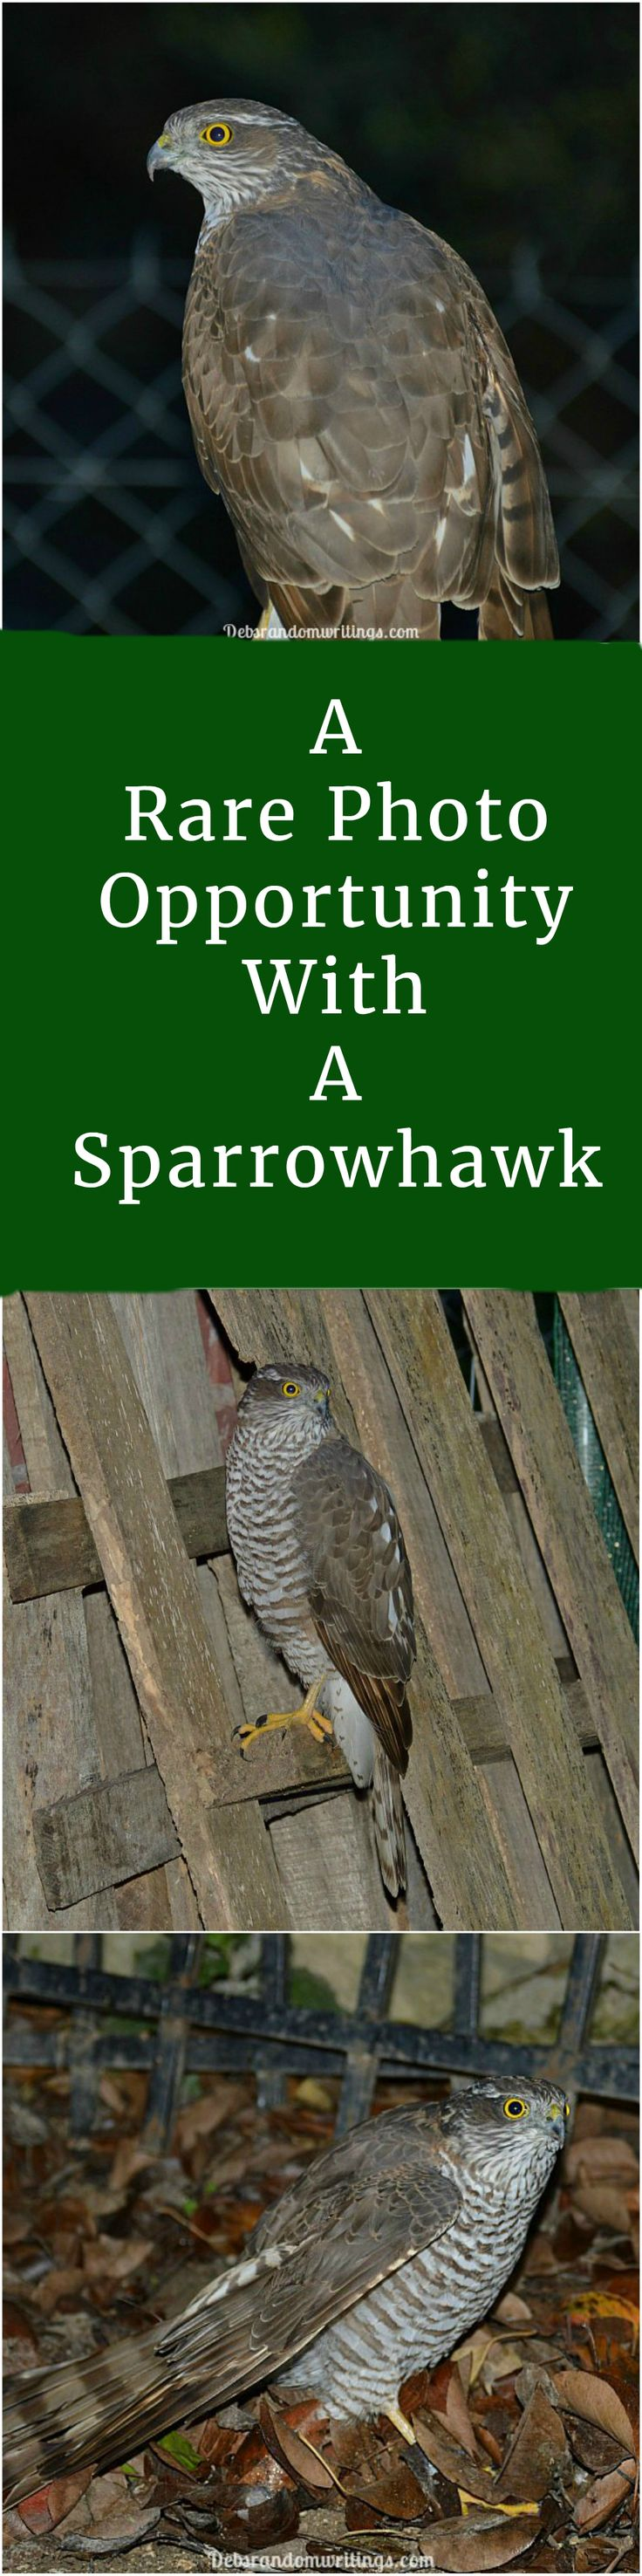 I cannot imagine the opportunity to photograph a sparrowhawk will be a regular thing. So upon finding an injured, but feisty one in the garden I quickly grabbed my camera before it made its getaway.